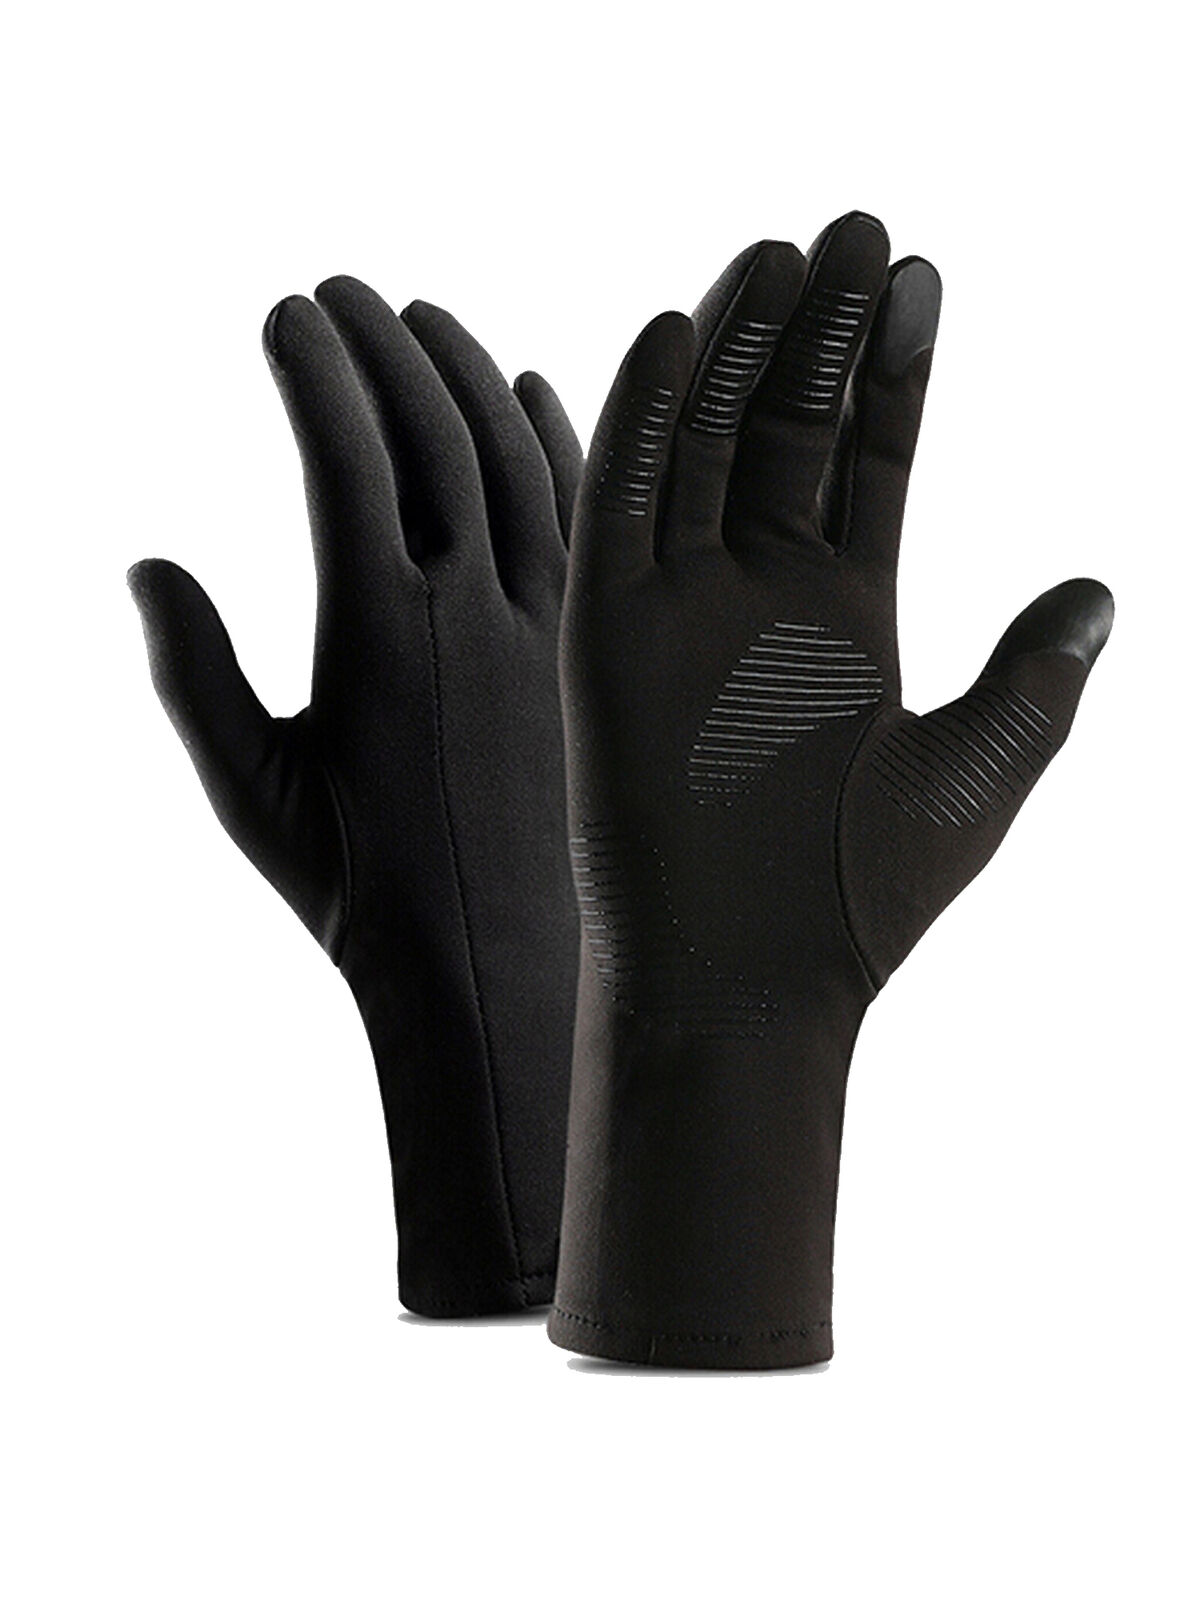 1pc Two Finger Anti-fouling Glove For Artist Drawing /& Pen Graphic Table Fj